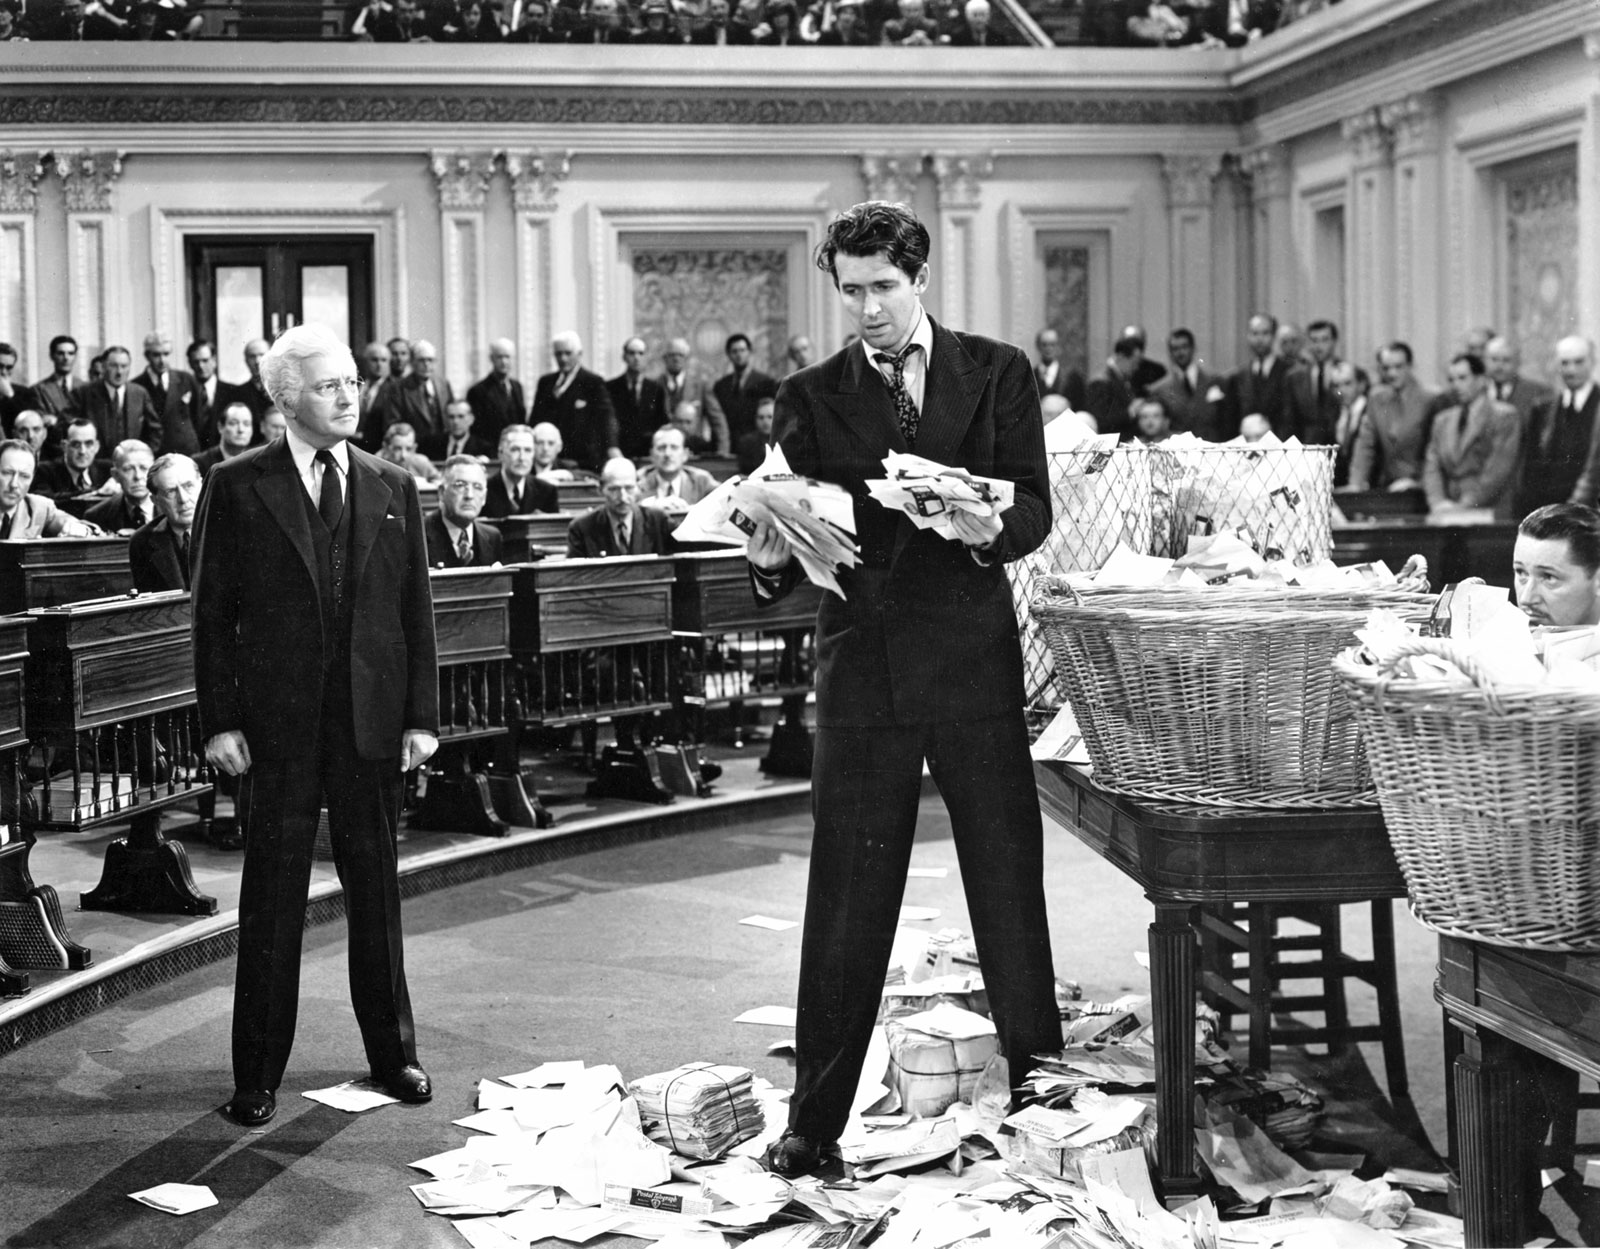 Claude Rains and Jimmy Stewart in Mr. Smith Goes to Washington